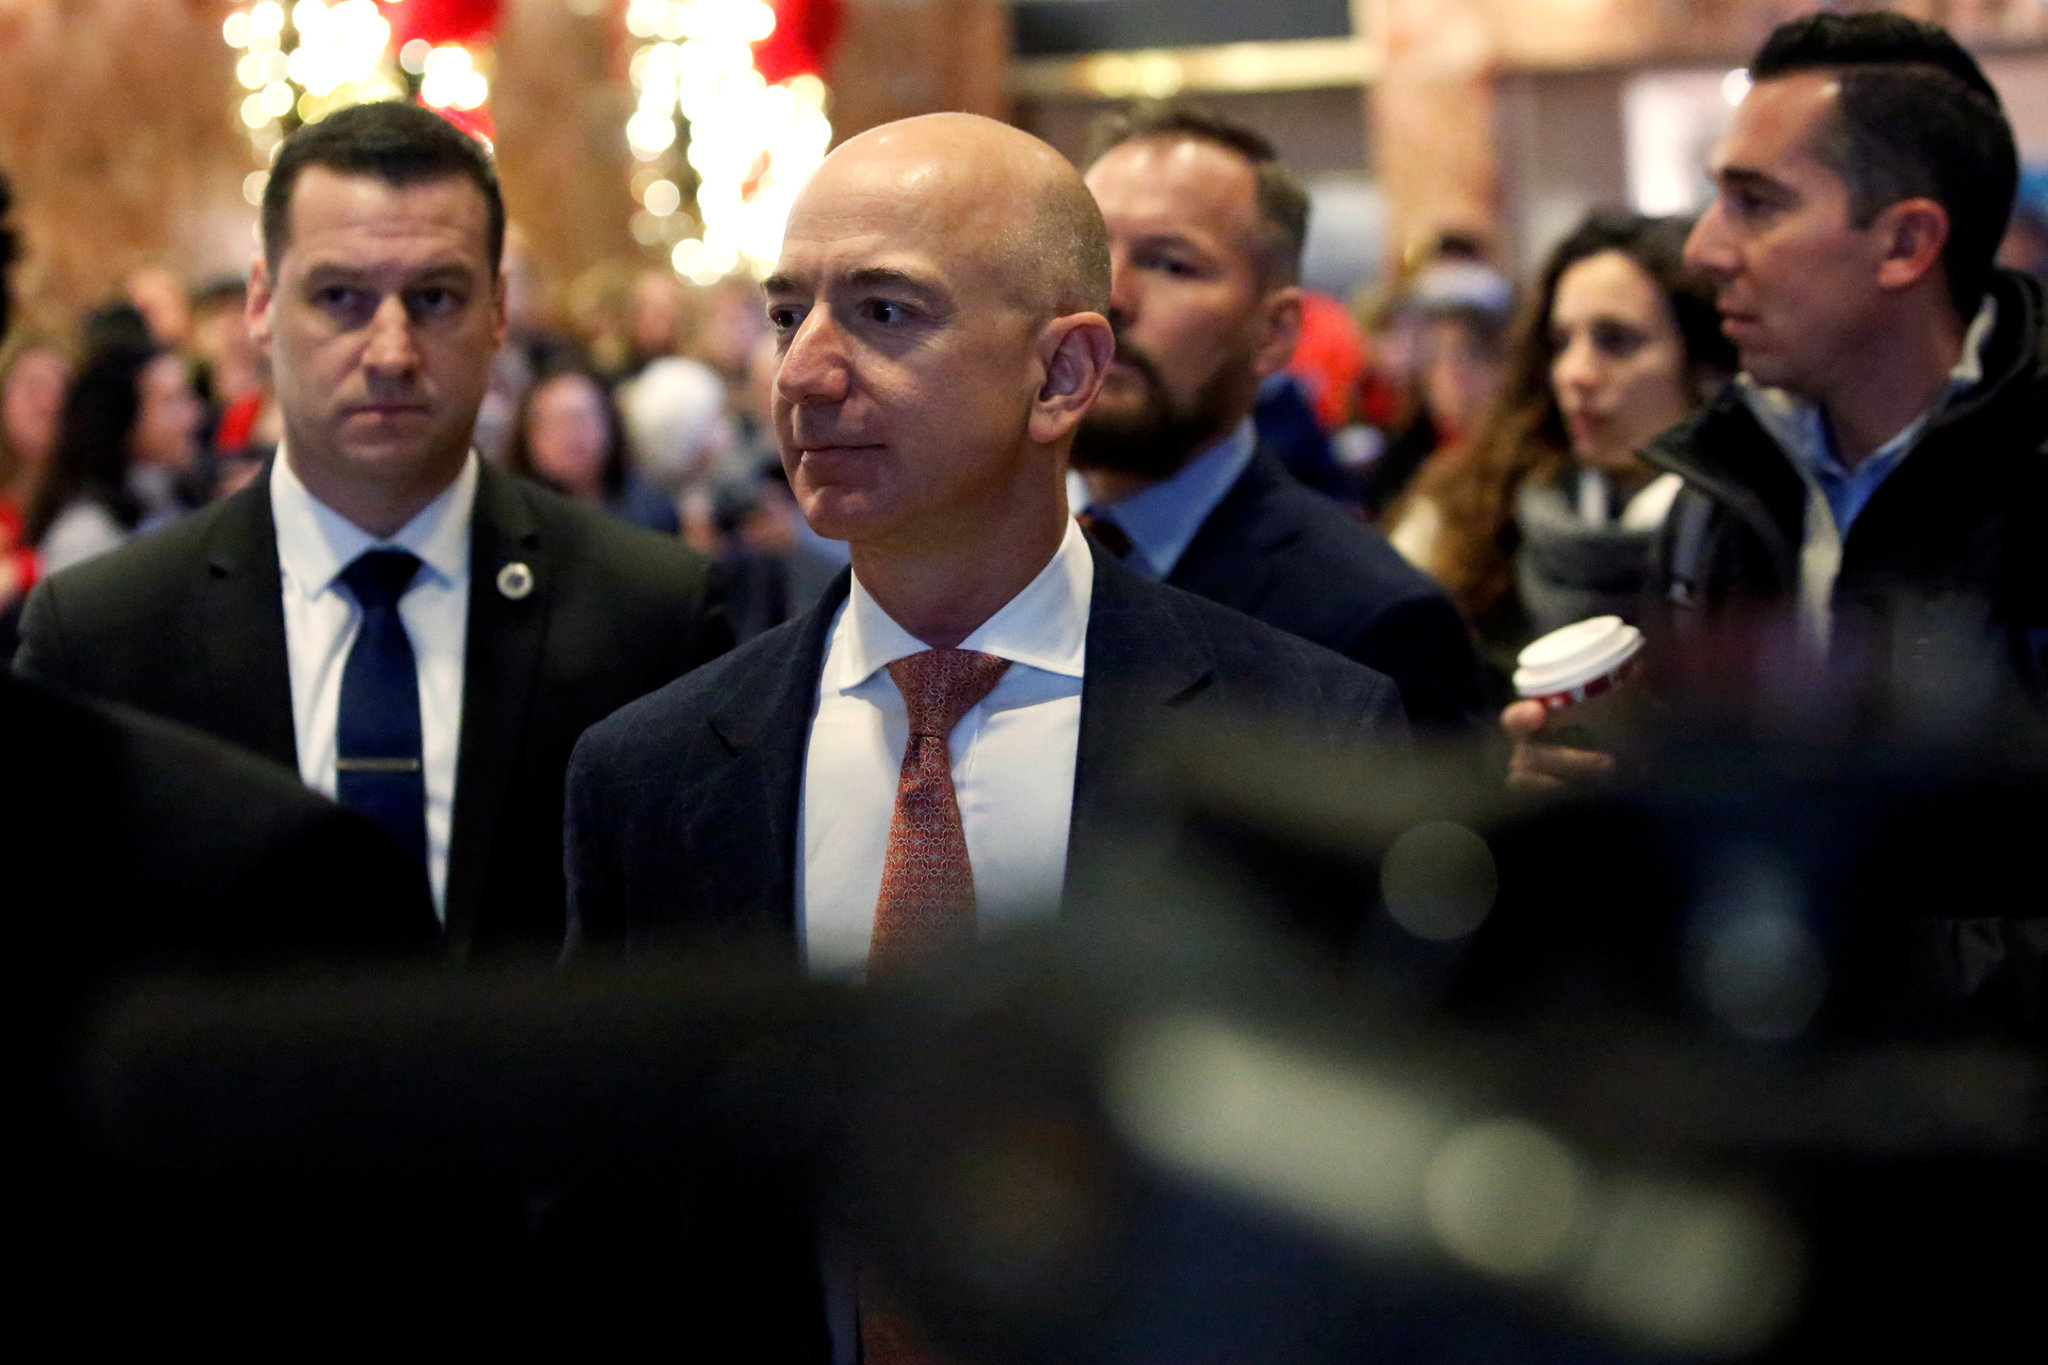 Jeff Bezos, Amazon's founder, was able to find investors willing to trust him enough to invest in the company even as it racked up loss after loss. (Photo: Reuters - Andrew Kelly)